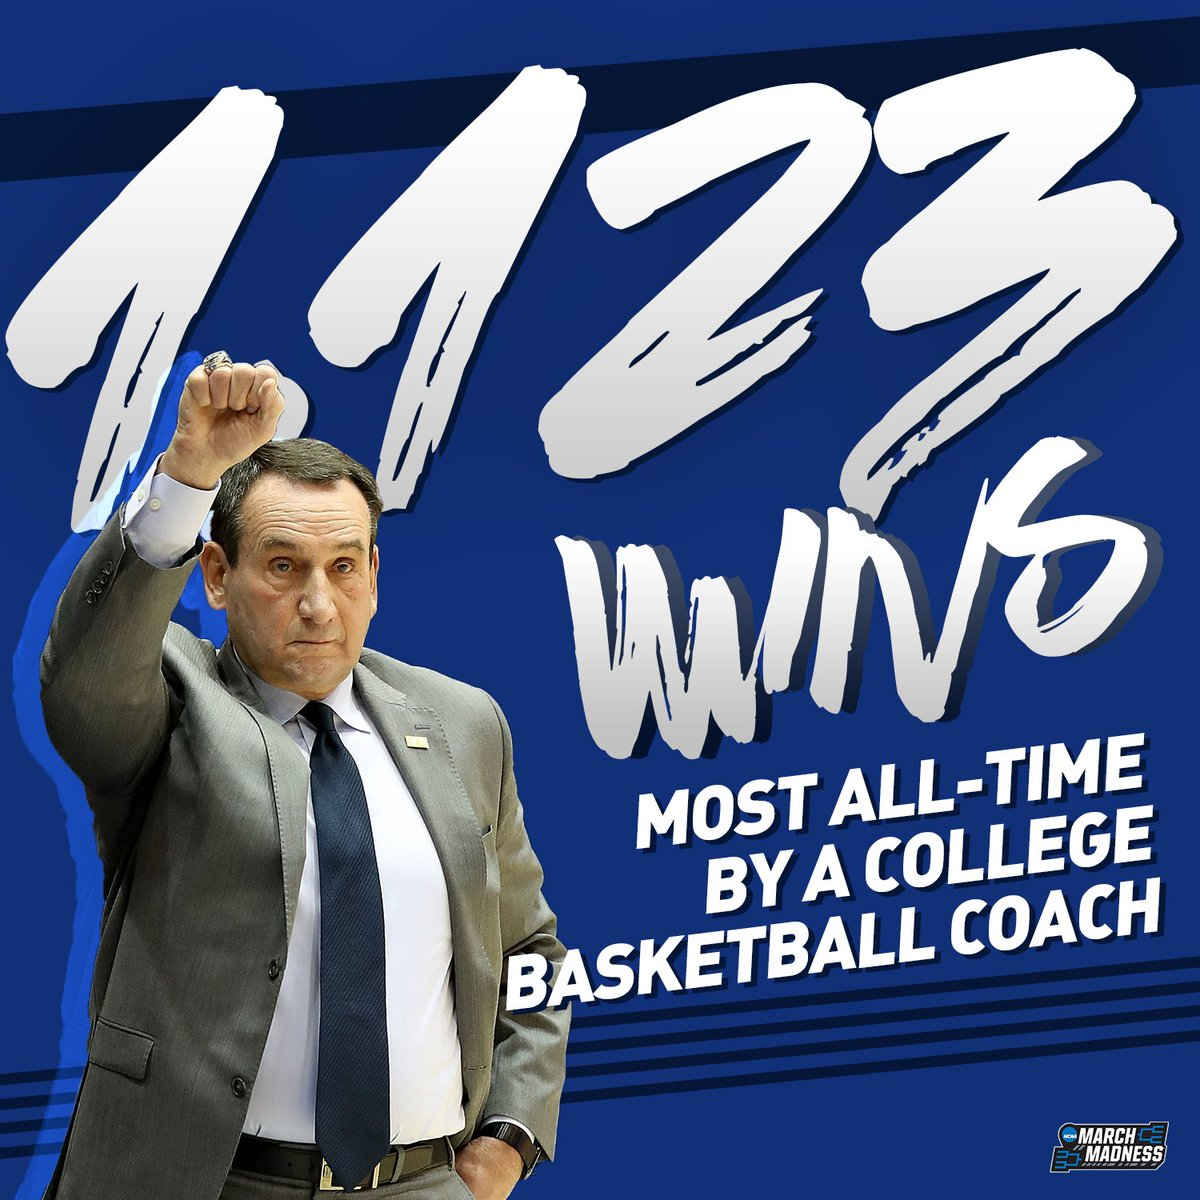 Is Coach K the GOAT? 🐐  Congrats to Mike Krzyzewski on becoming the all-time winningest coach in college basketball history! 👏